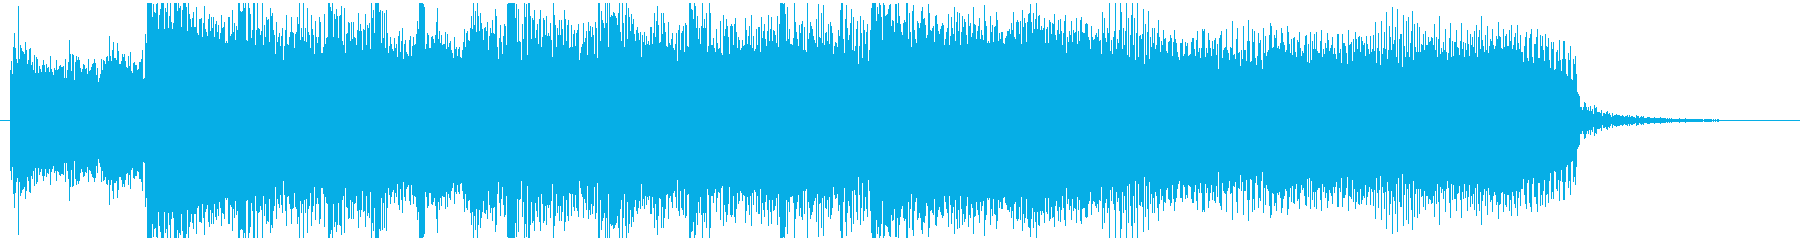 Fight To Live 10 sec's reproduced waveform